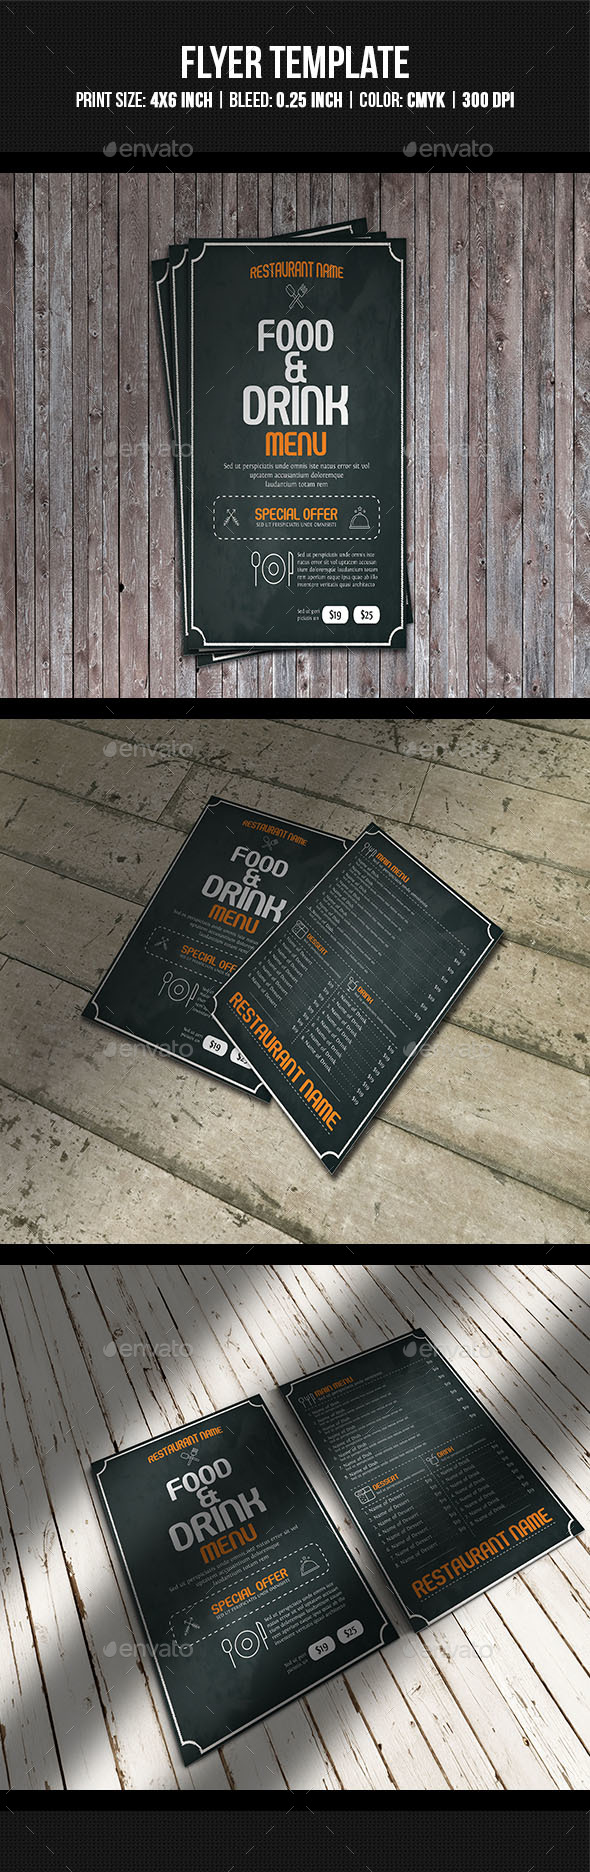 Food Menu Flyer Template - Food Menus Print Templates